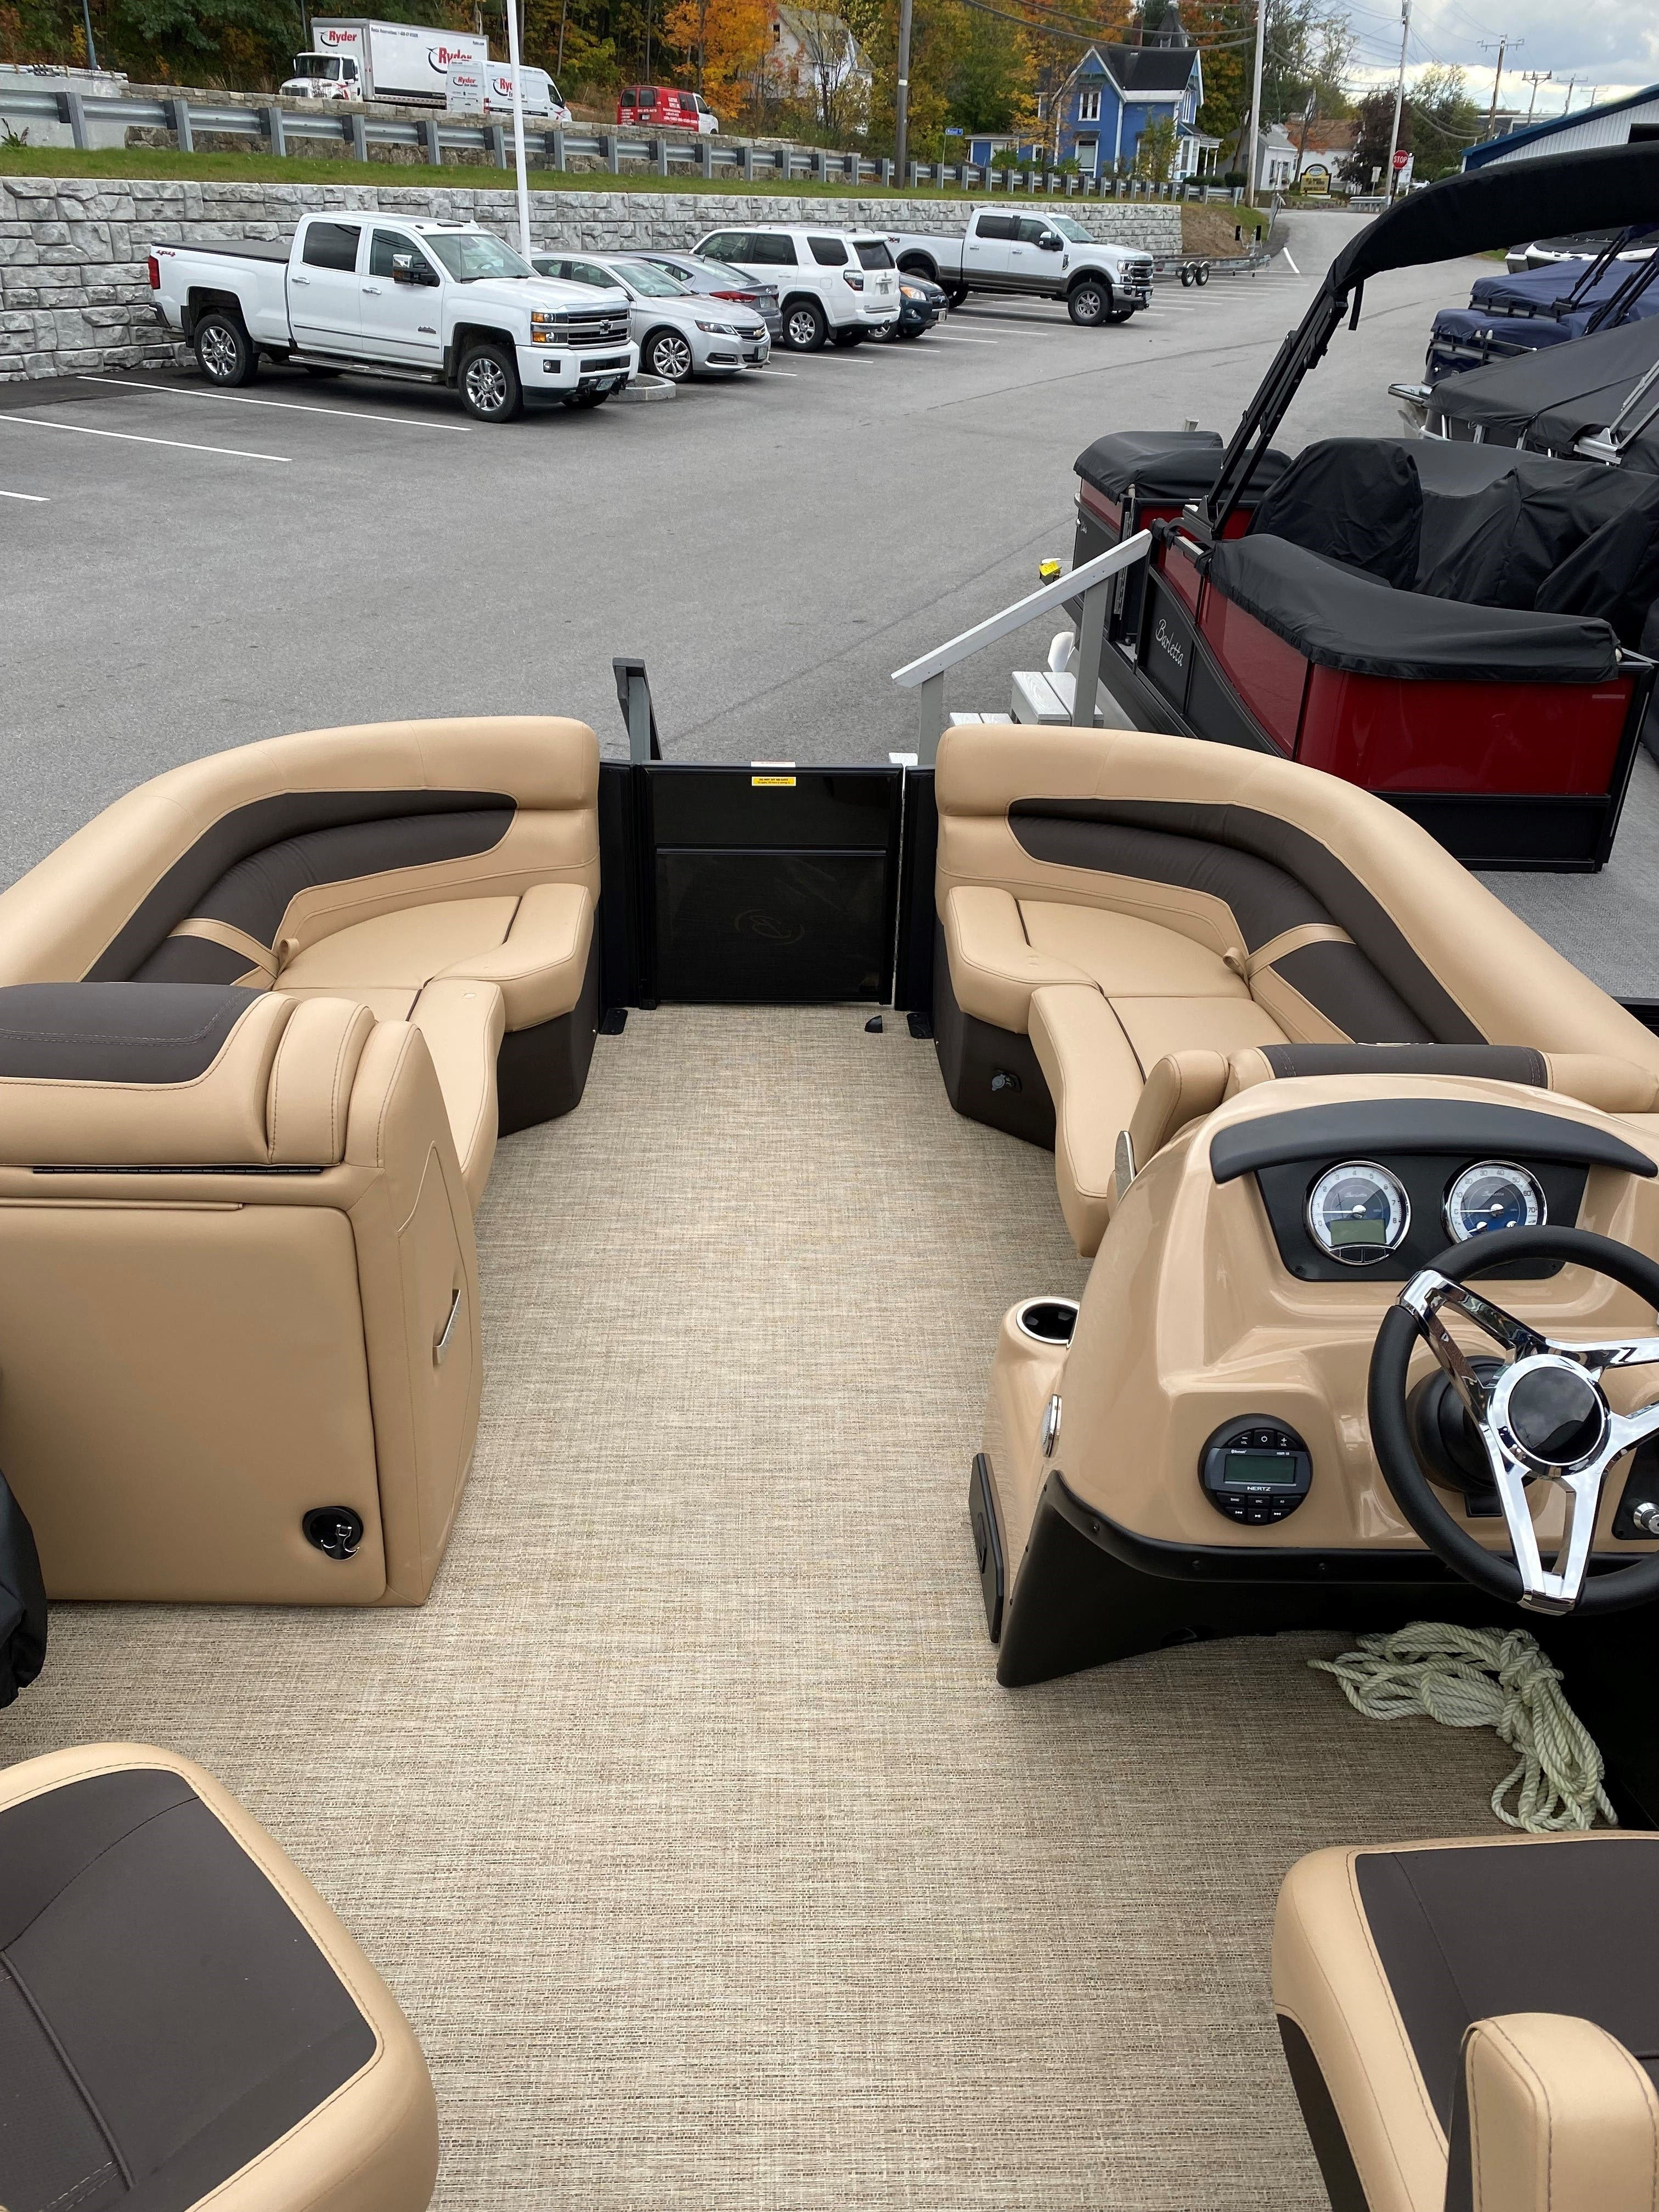 2022 Barletta boat for sale, model of the boat is C22UC & Image # 9 of 12